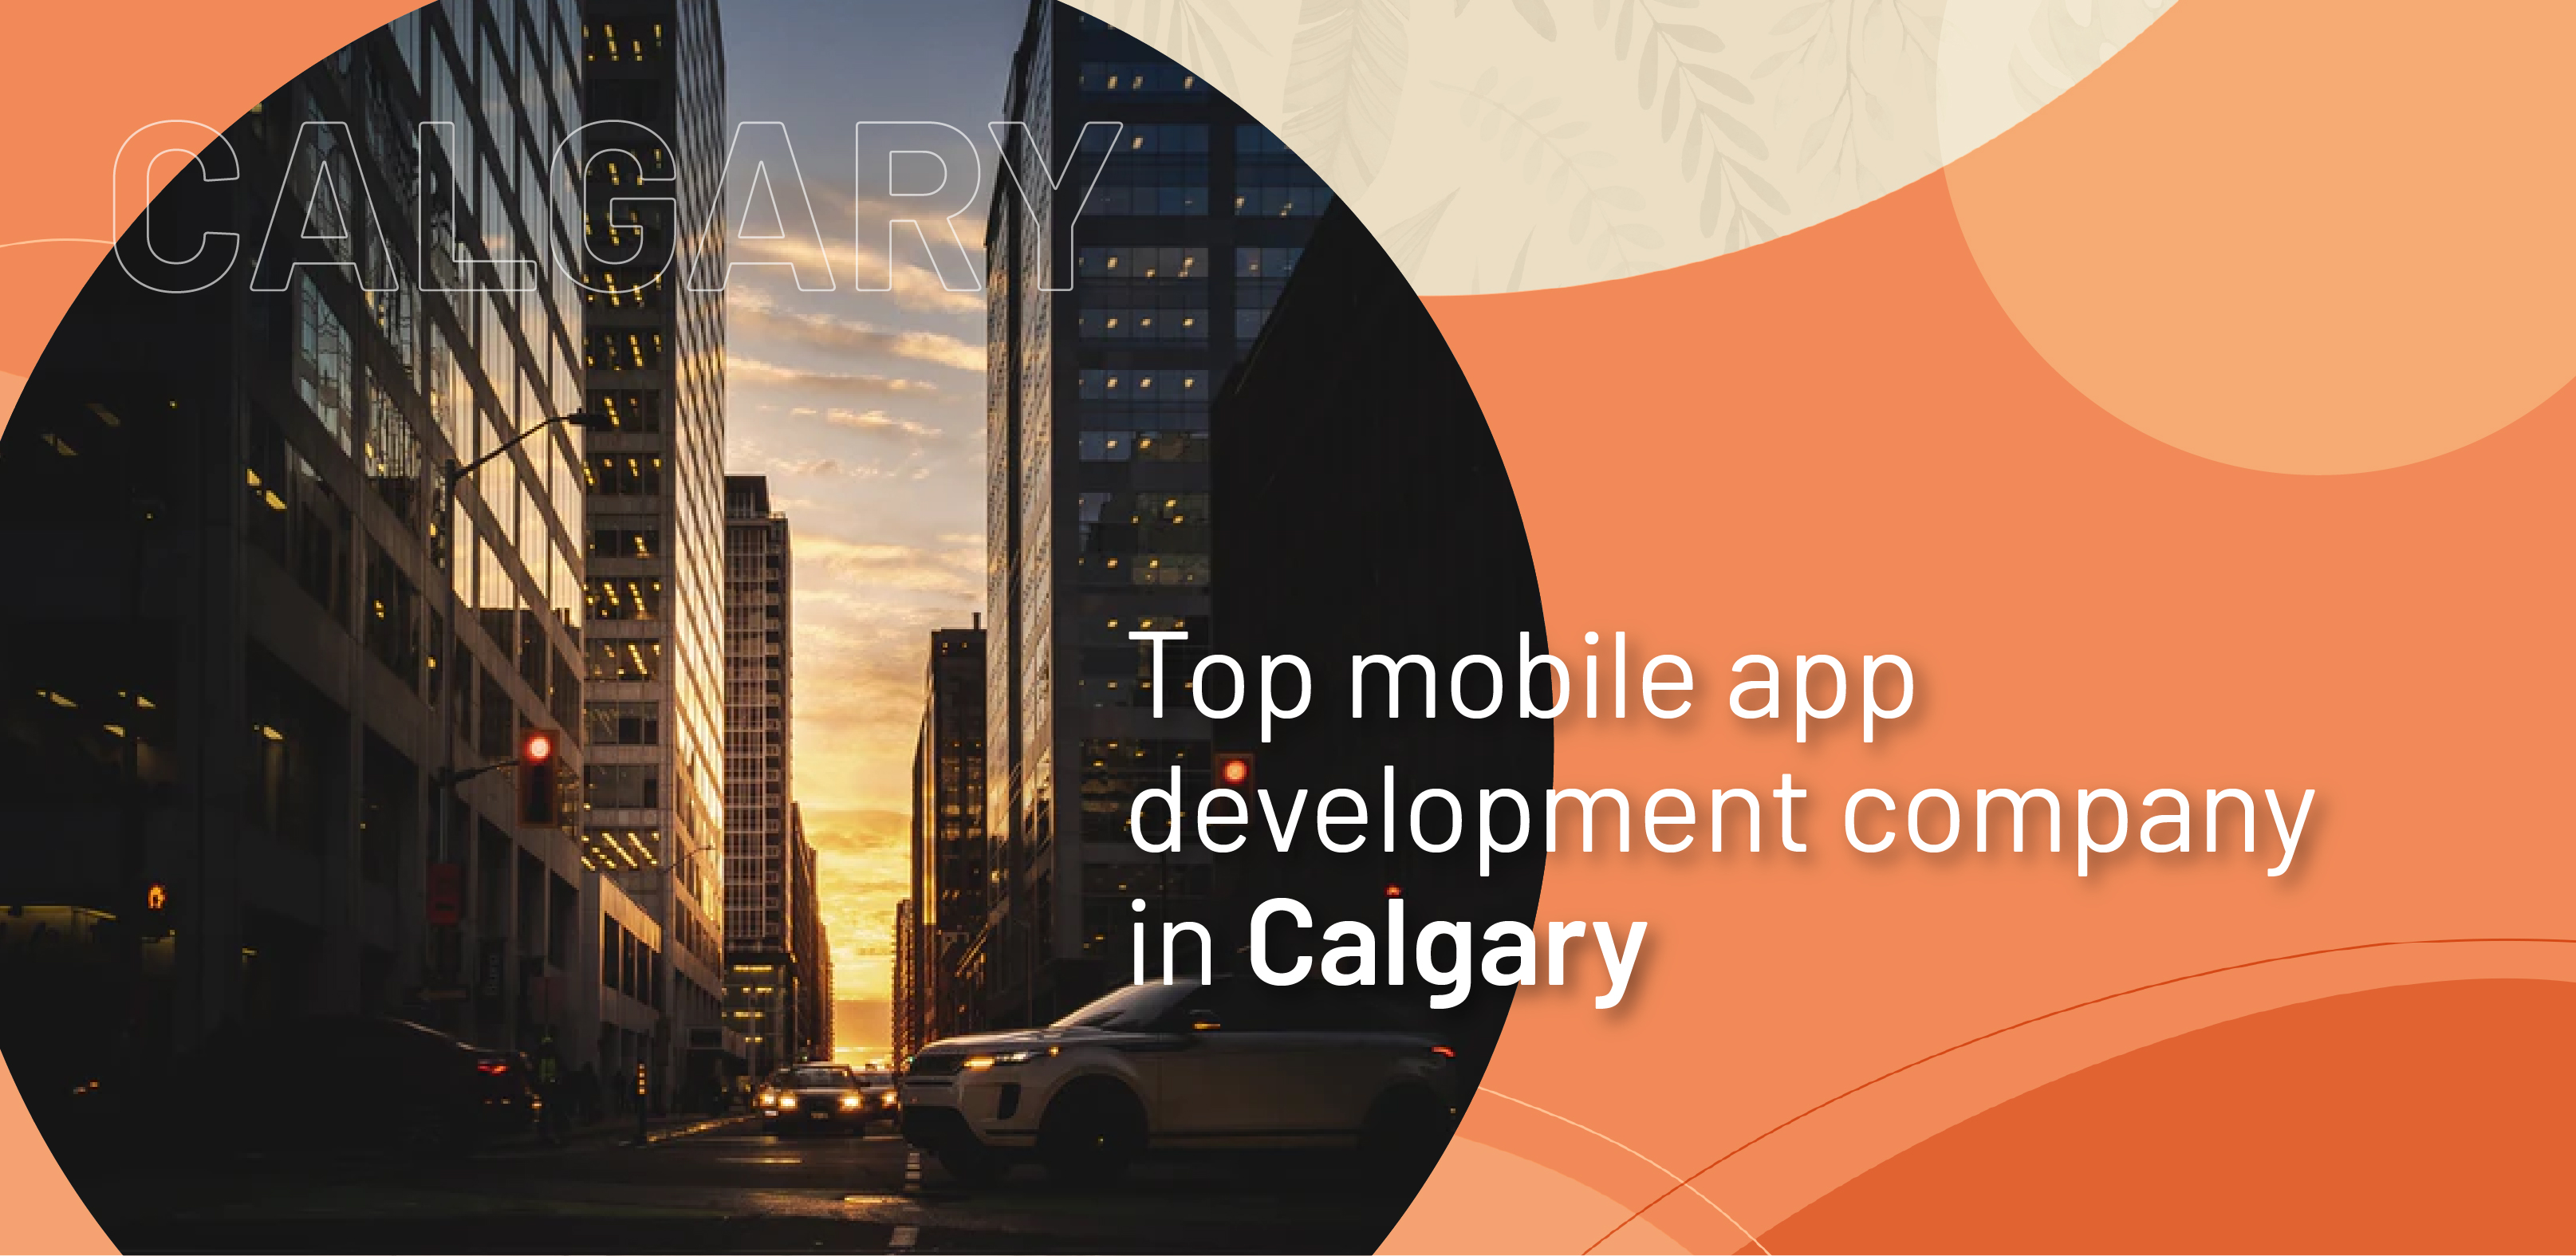 Top mobile app development company in Calgary - WebClues Infotech